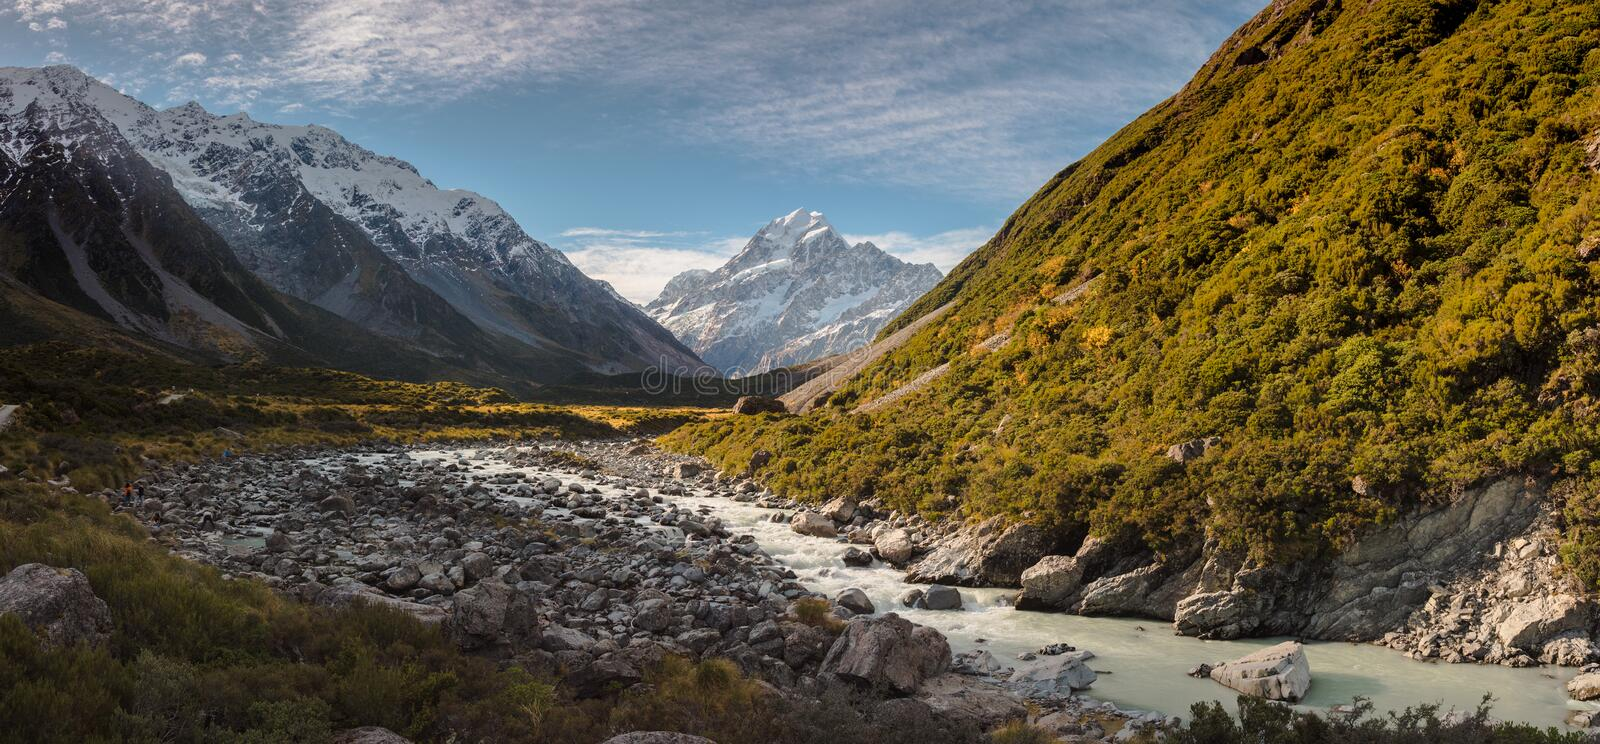 Mount. Cook in daytime royalty free stock image